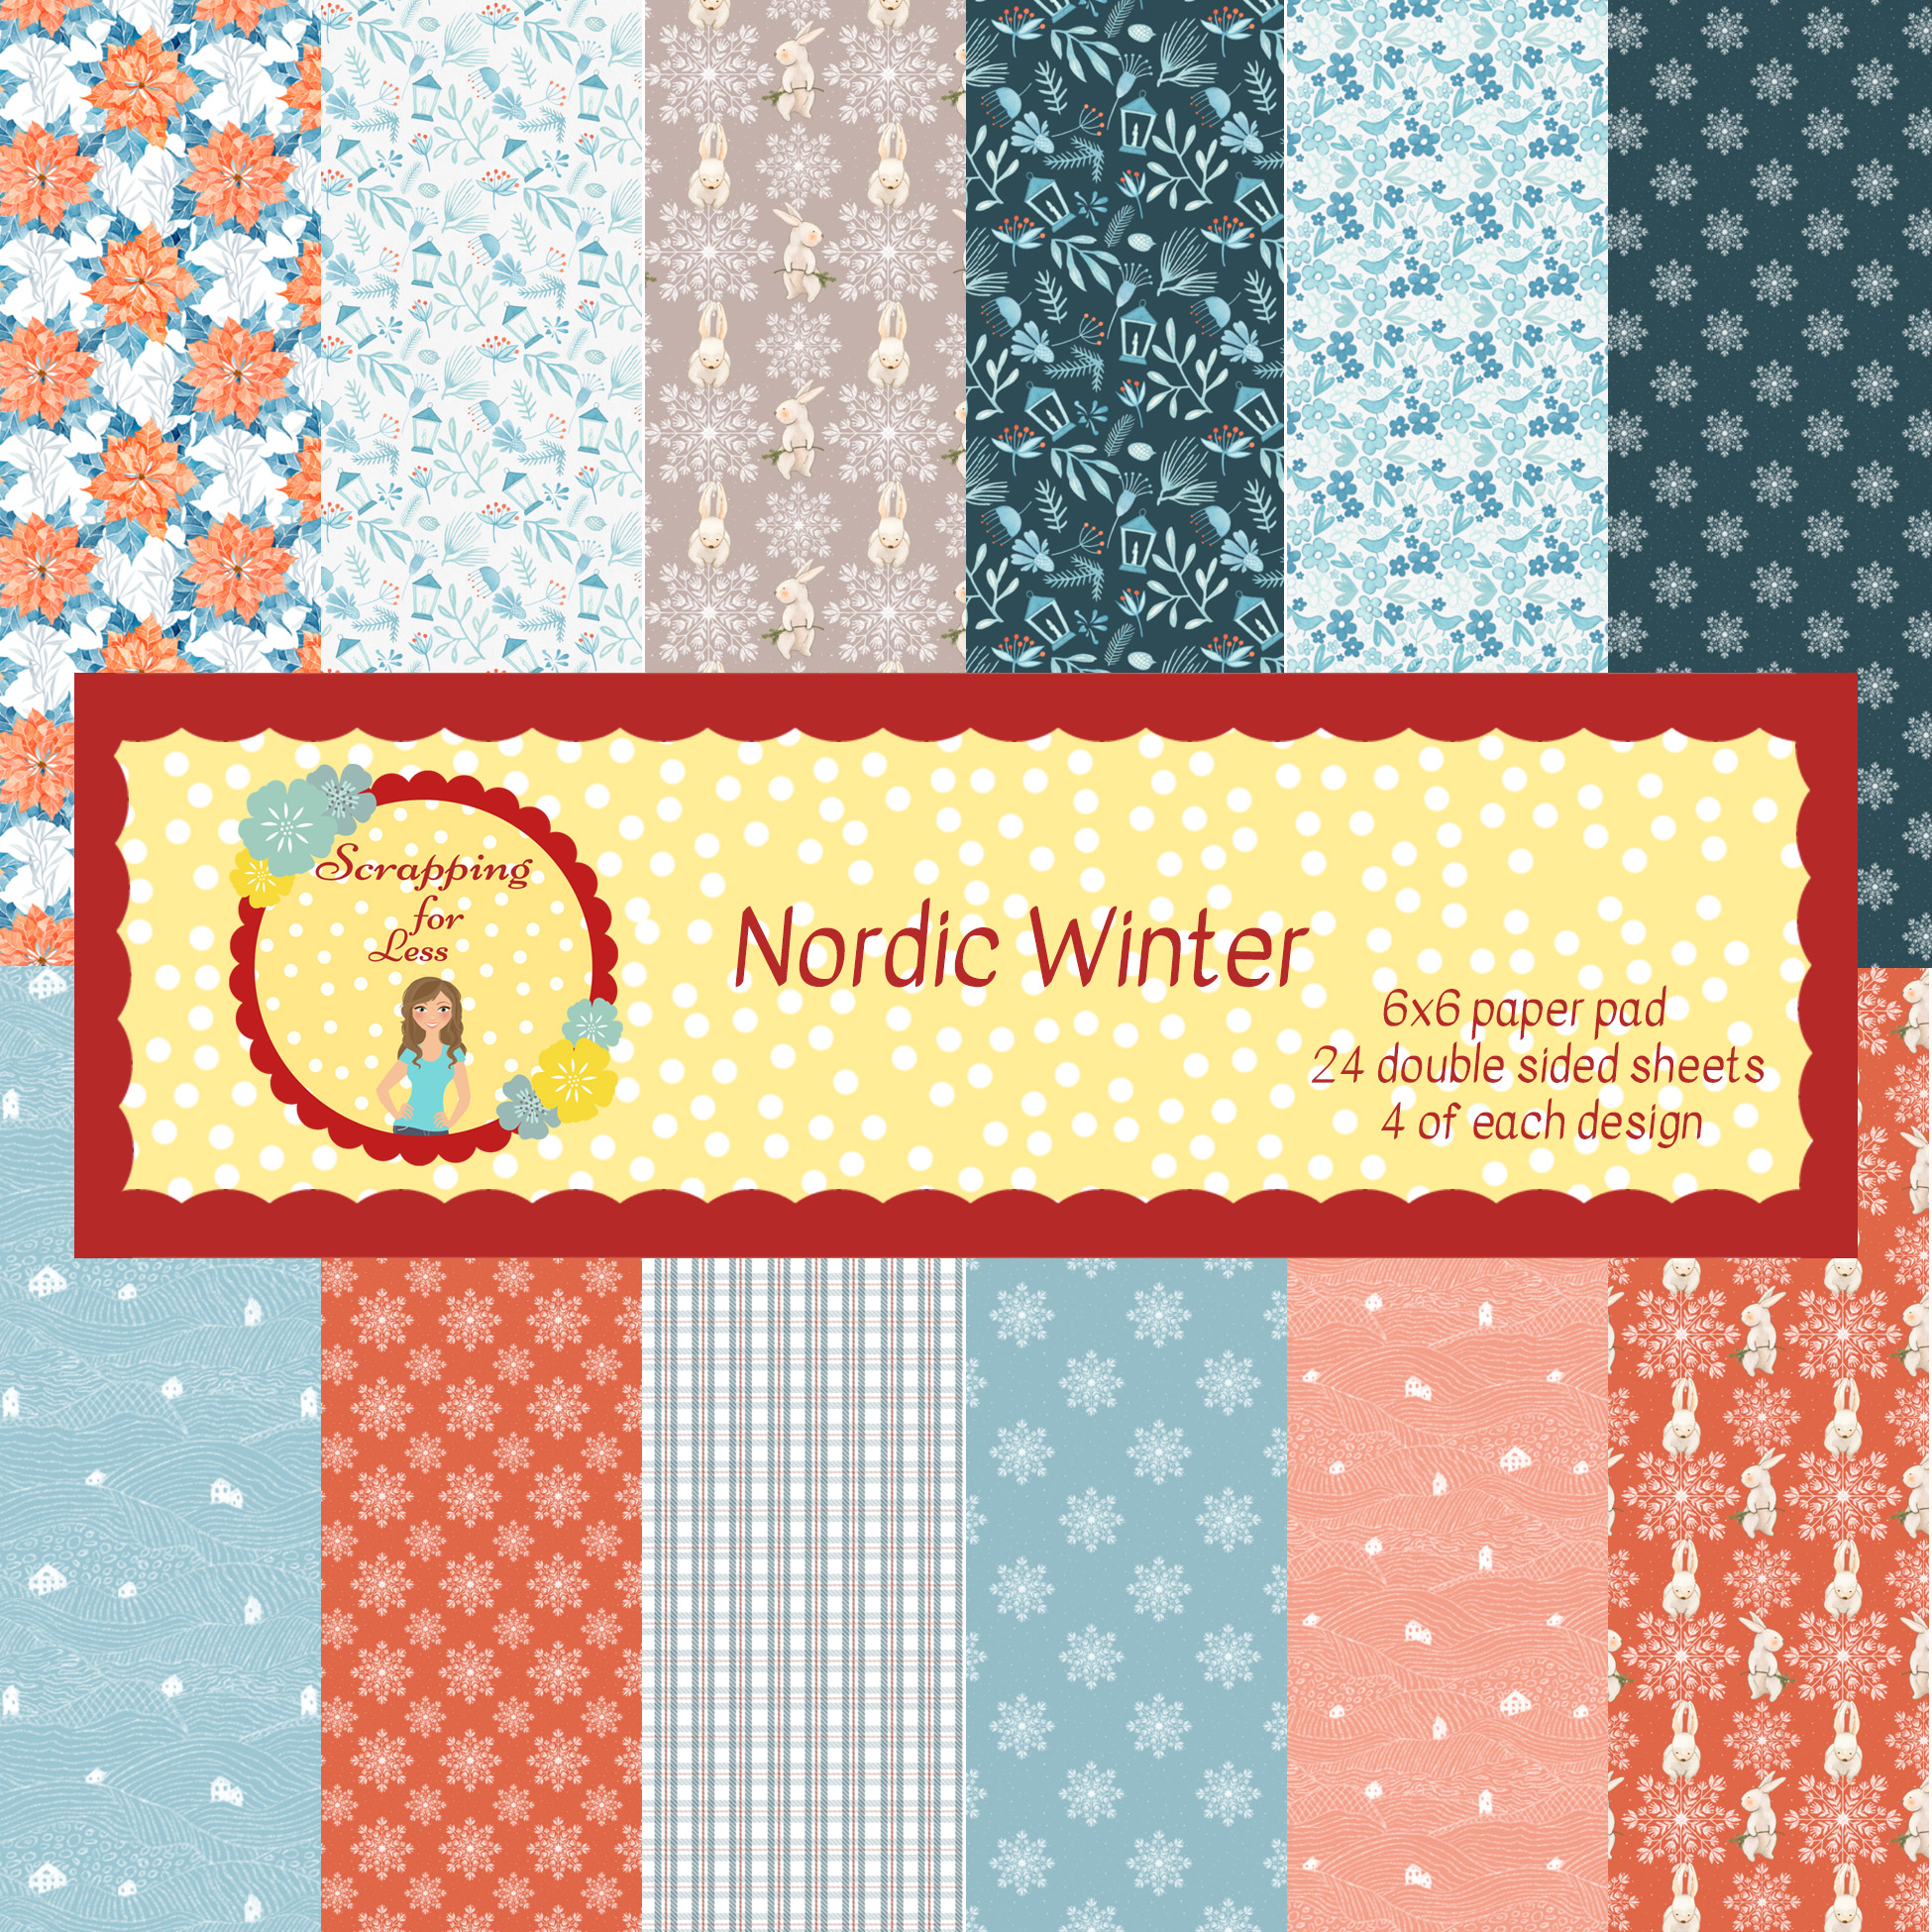 Scrapping for Less Nordic Winter 6x6 Paper Pad